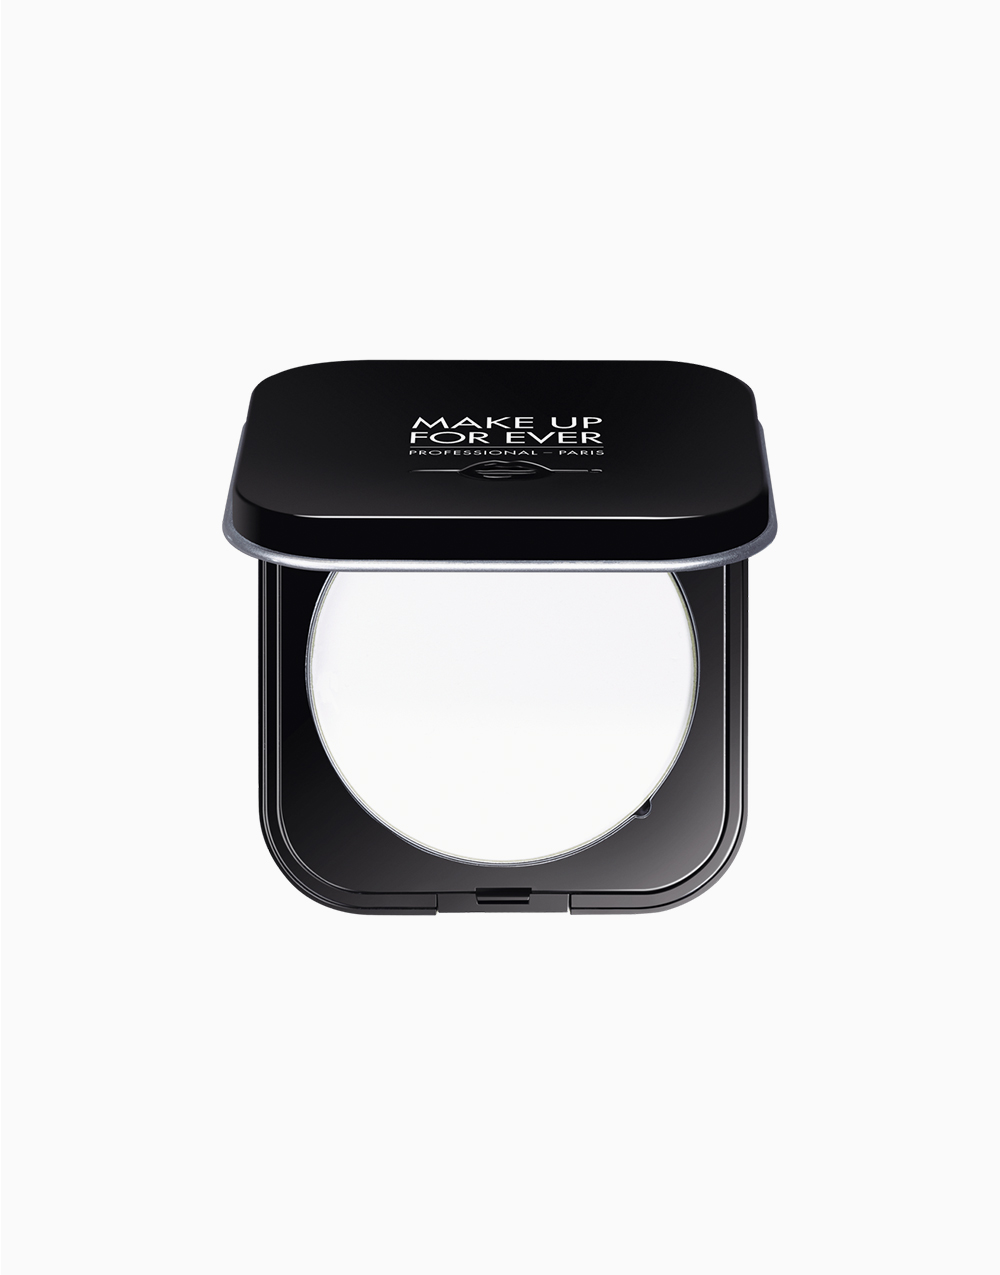 Ultra HD Pressed Powder (6.2g) by Make Up For Ever   #01